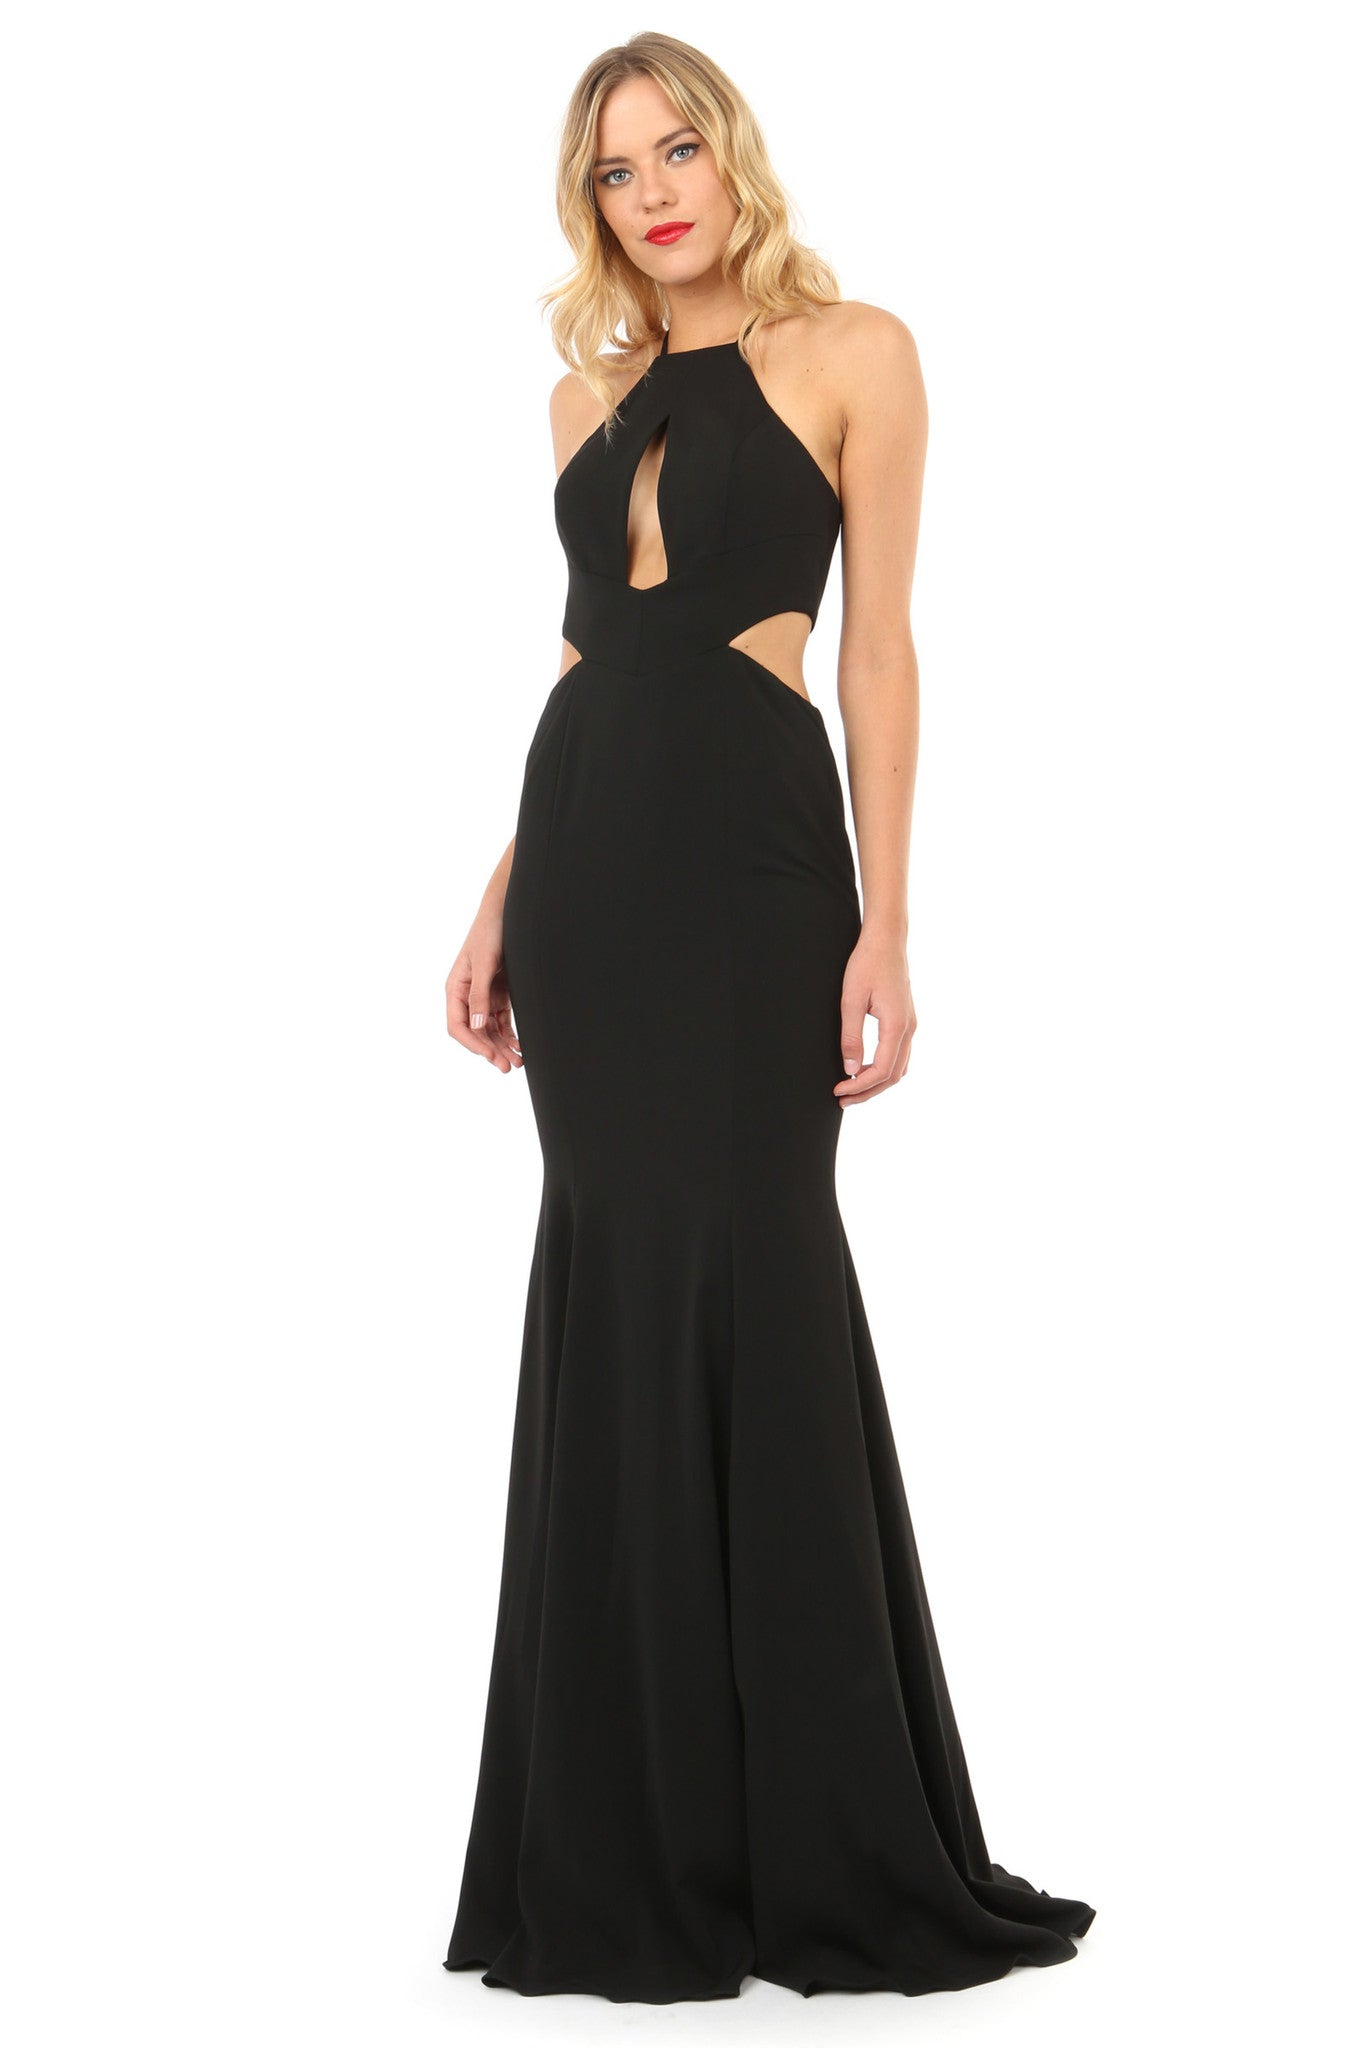 Jay Godfrey Black Cut-Out High Neck Gown - Front View